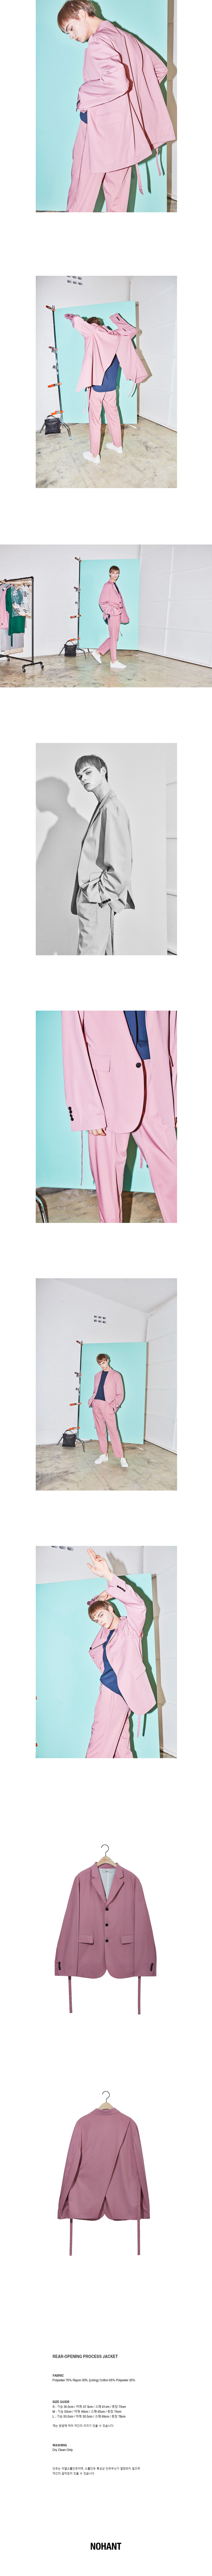 노앙(NOHANT) REAR-OPENING PROCESS JACKET PINK